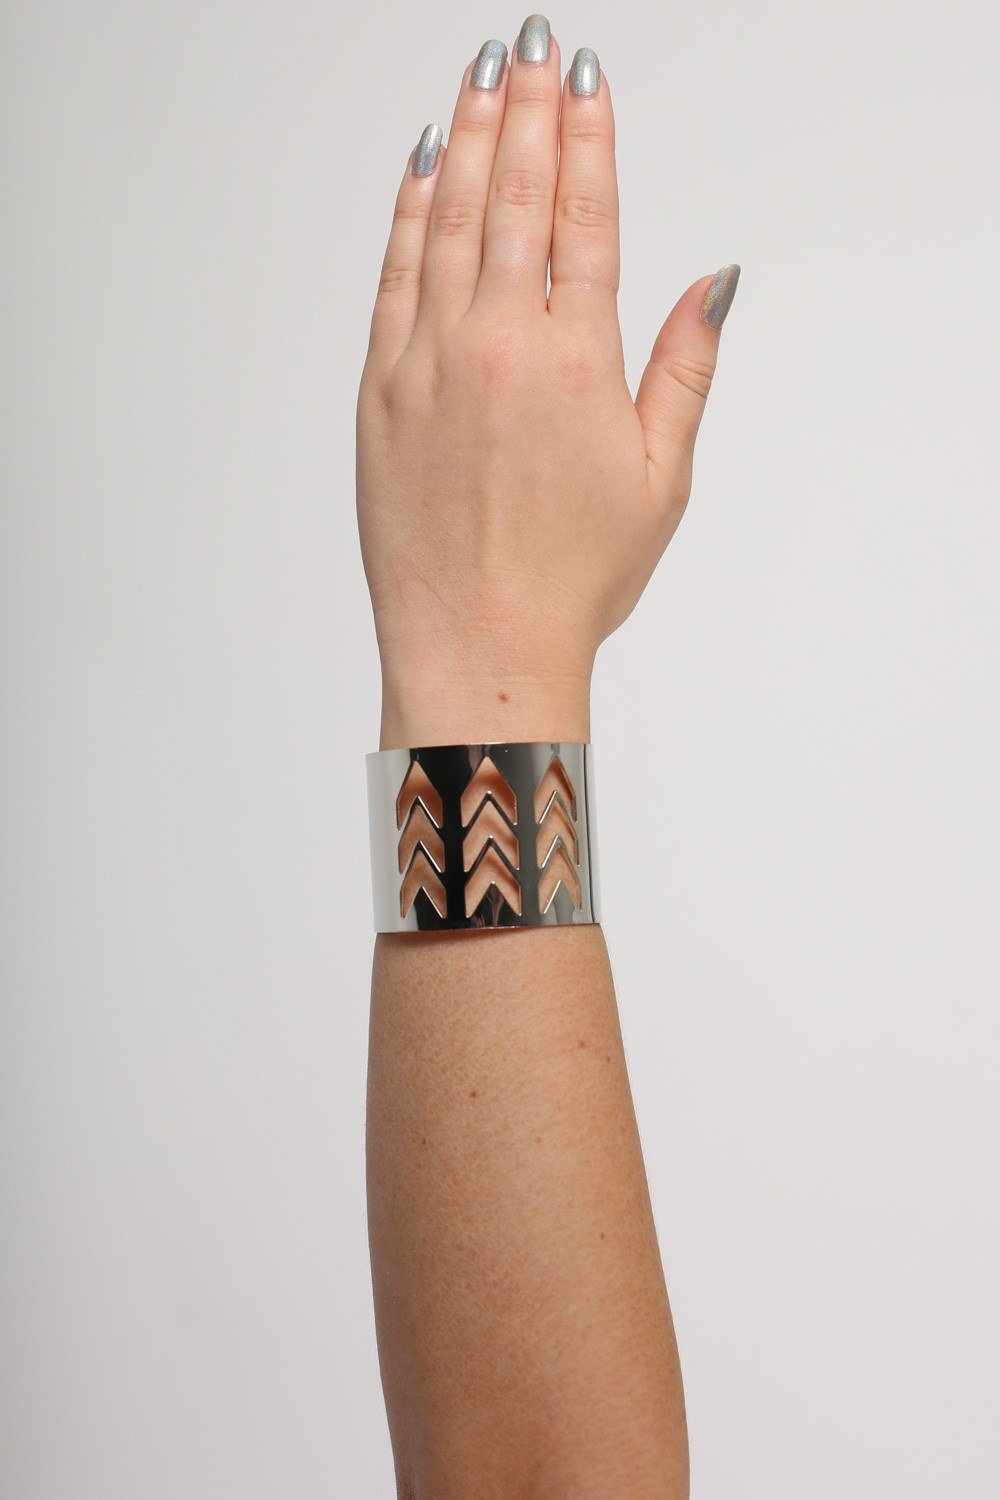 Chevron Cut Out Cuff Bracelet in Silver 0